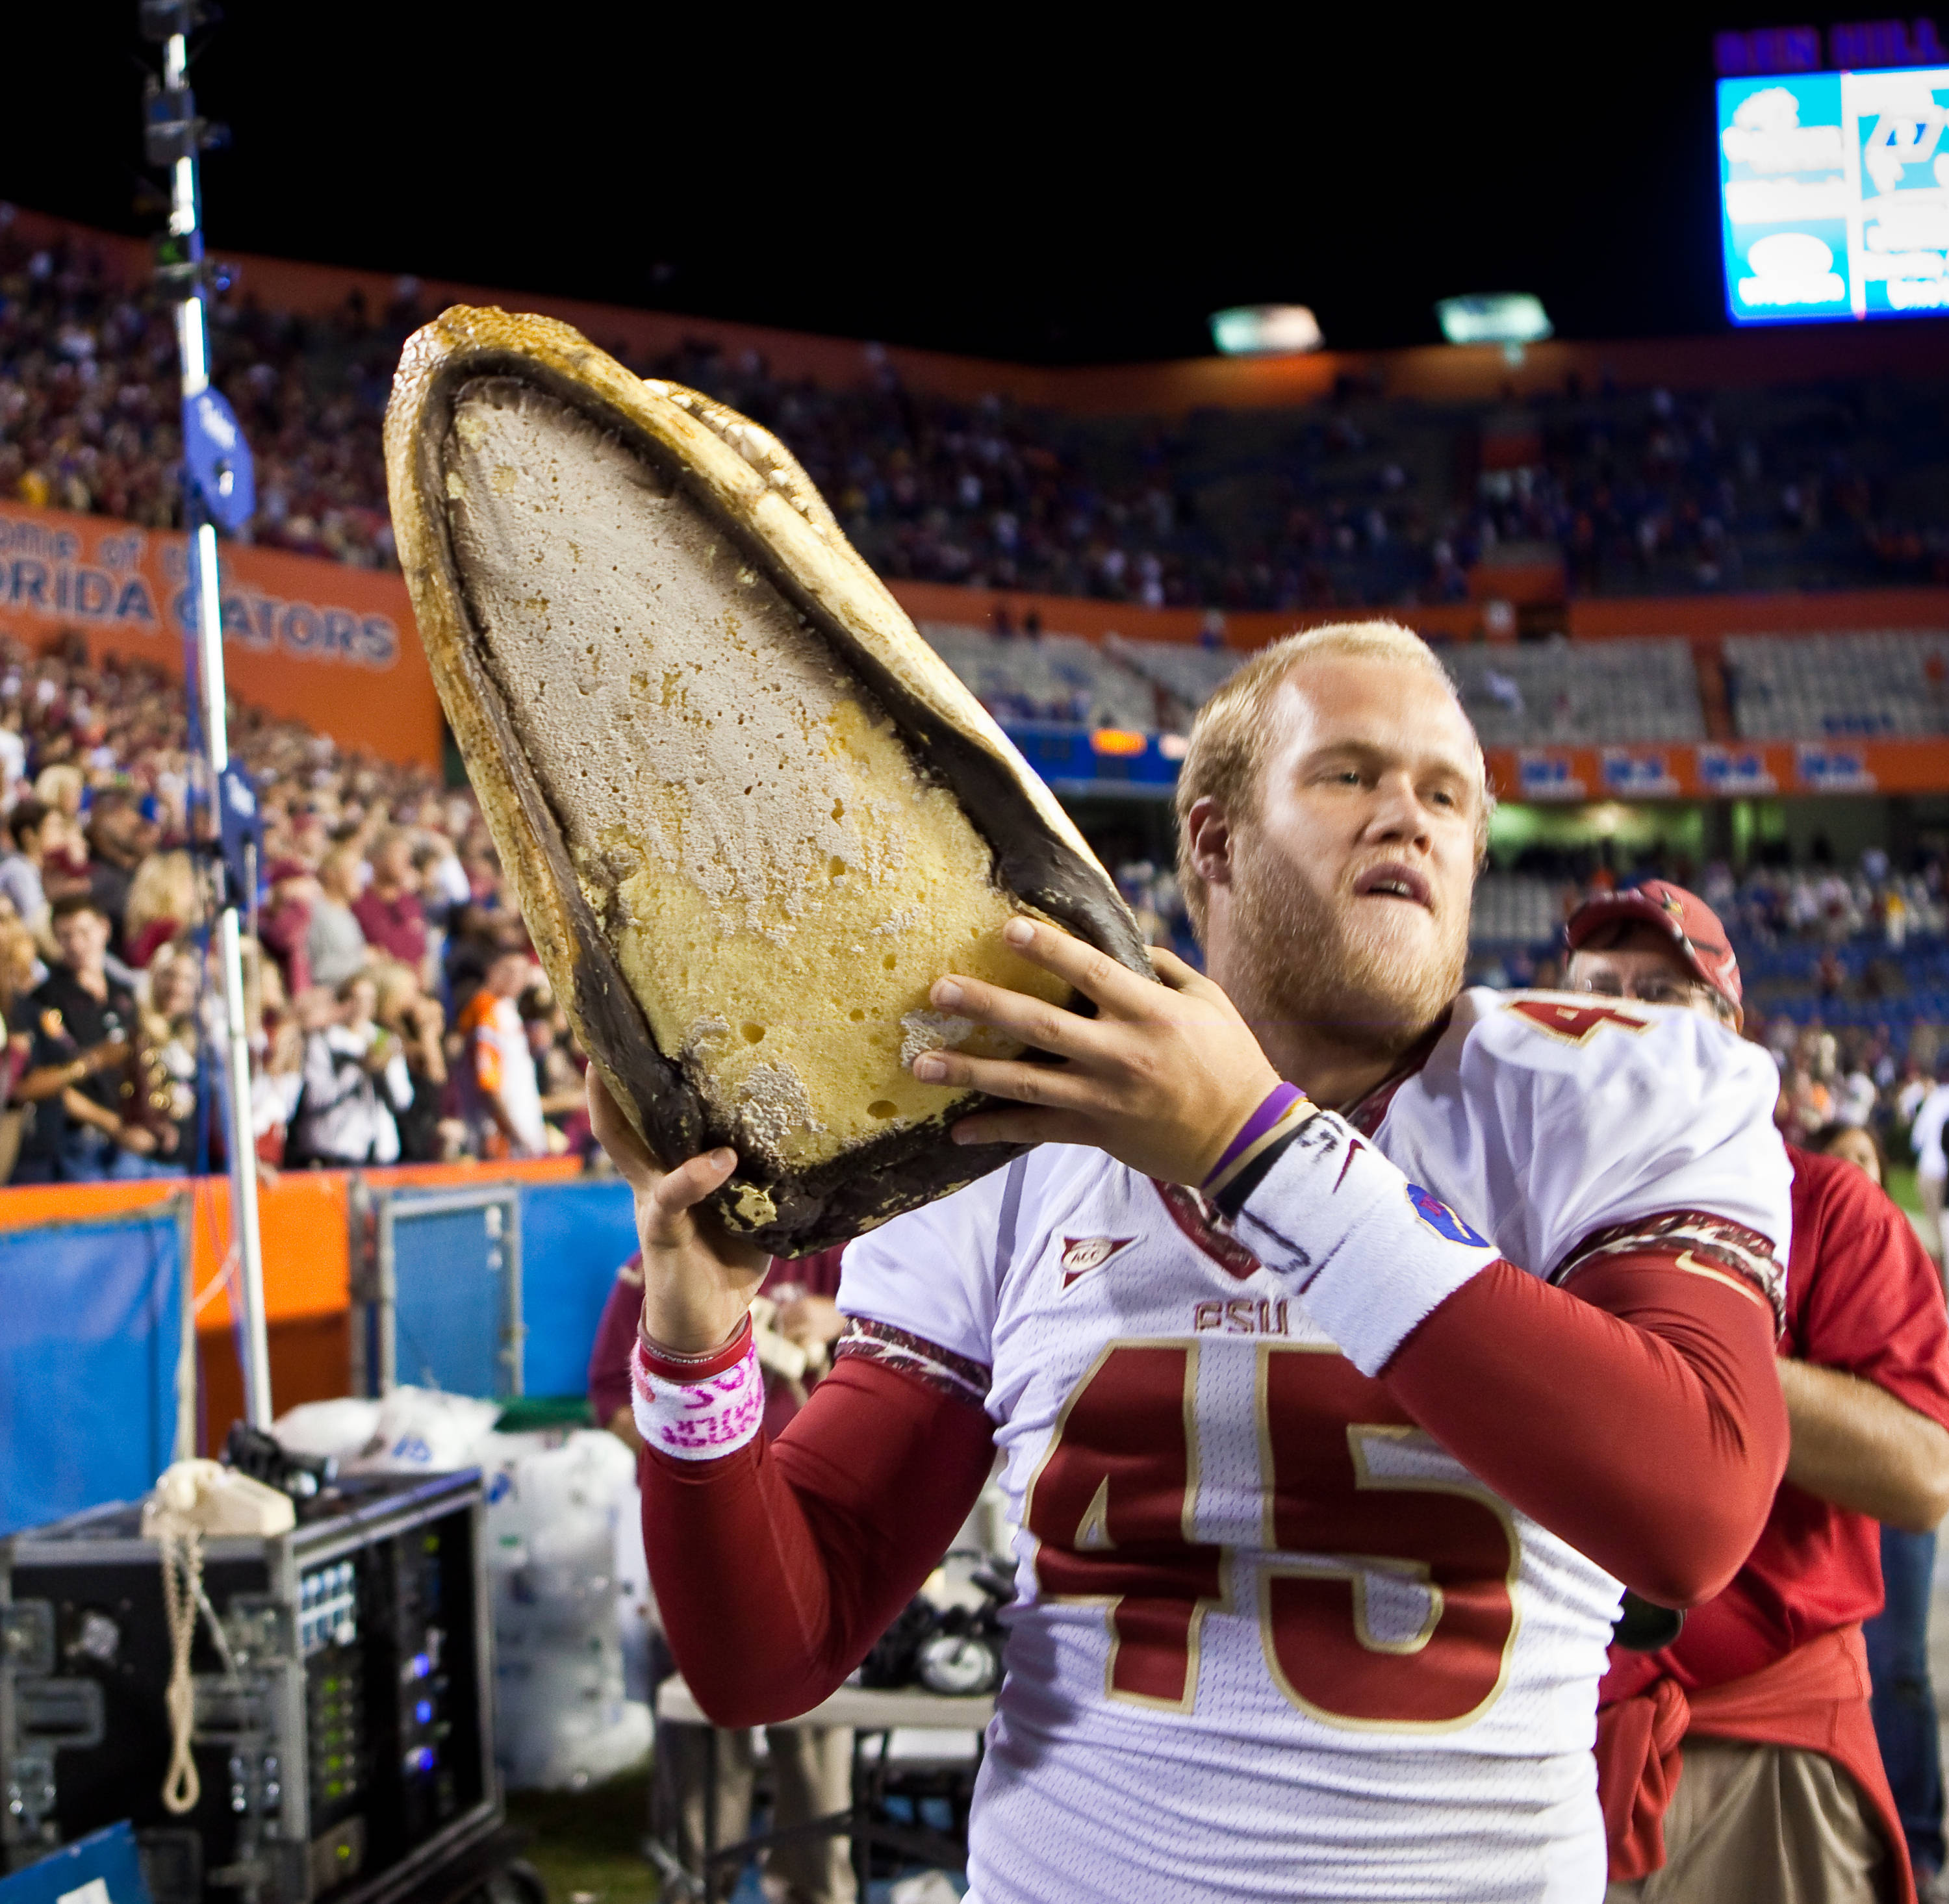 Shawn Powell (45) hoists the Gator head high after the Seminoles' 21-7 victory in the Swamp